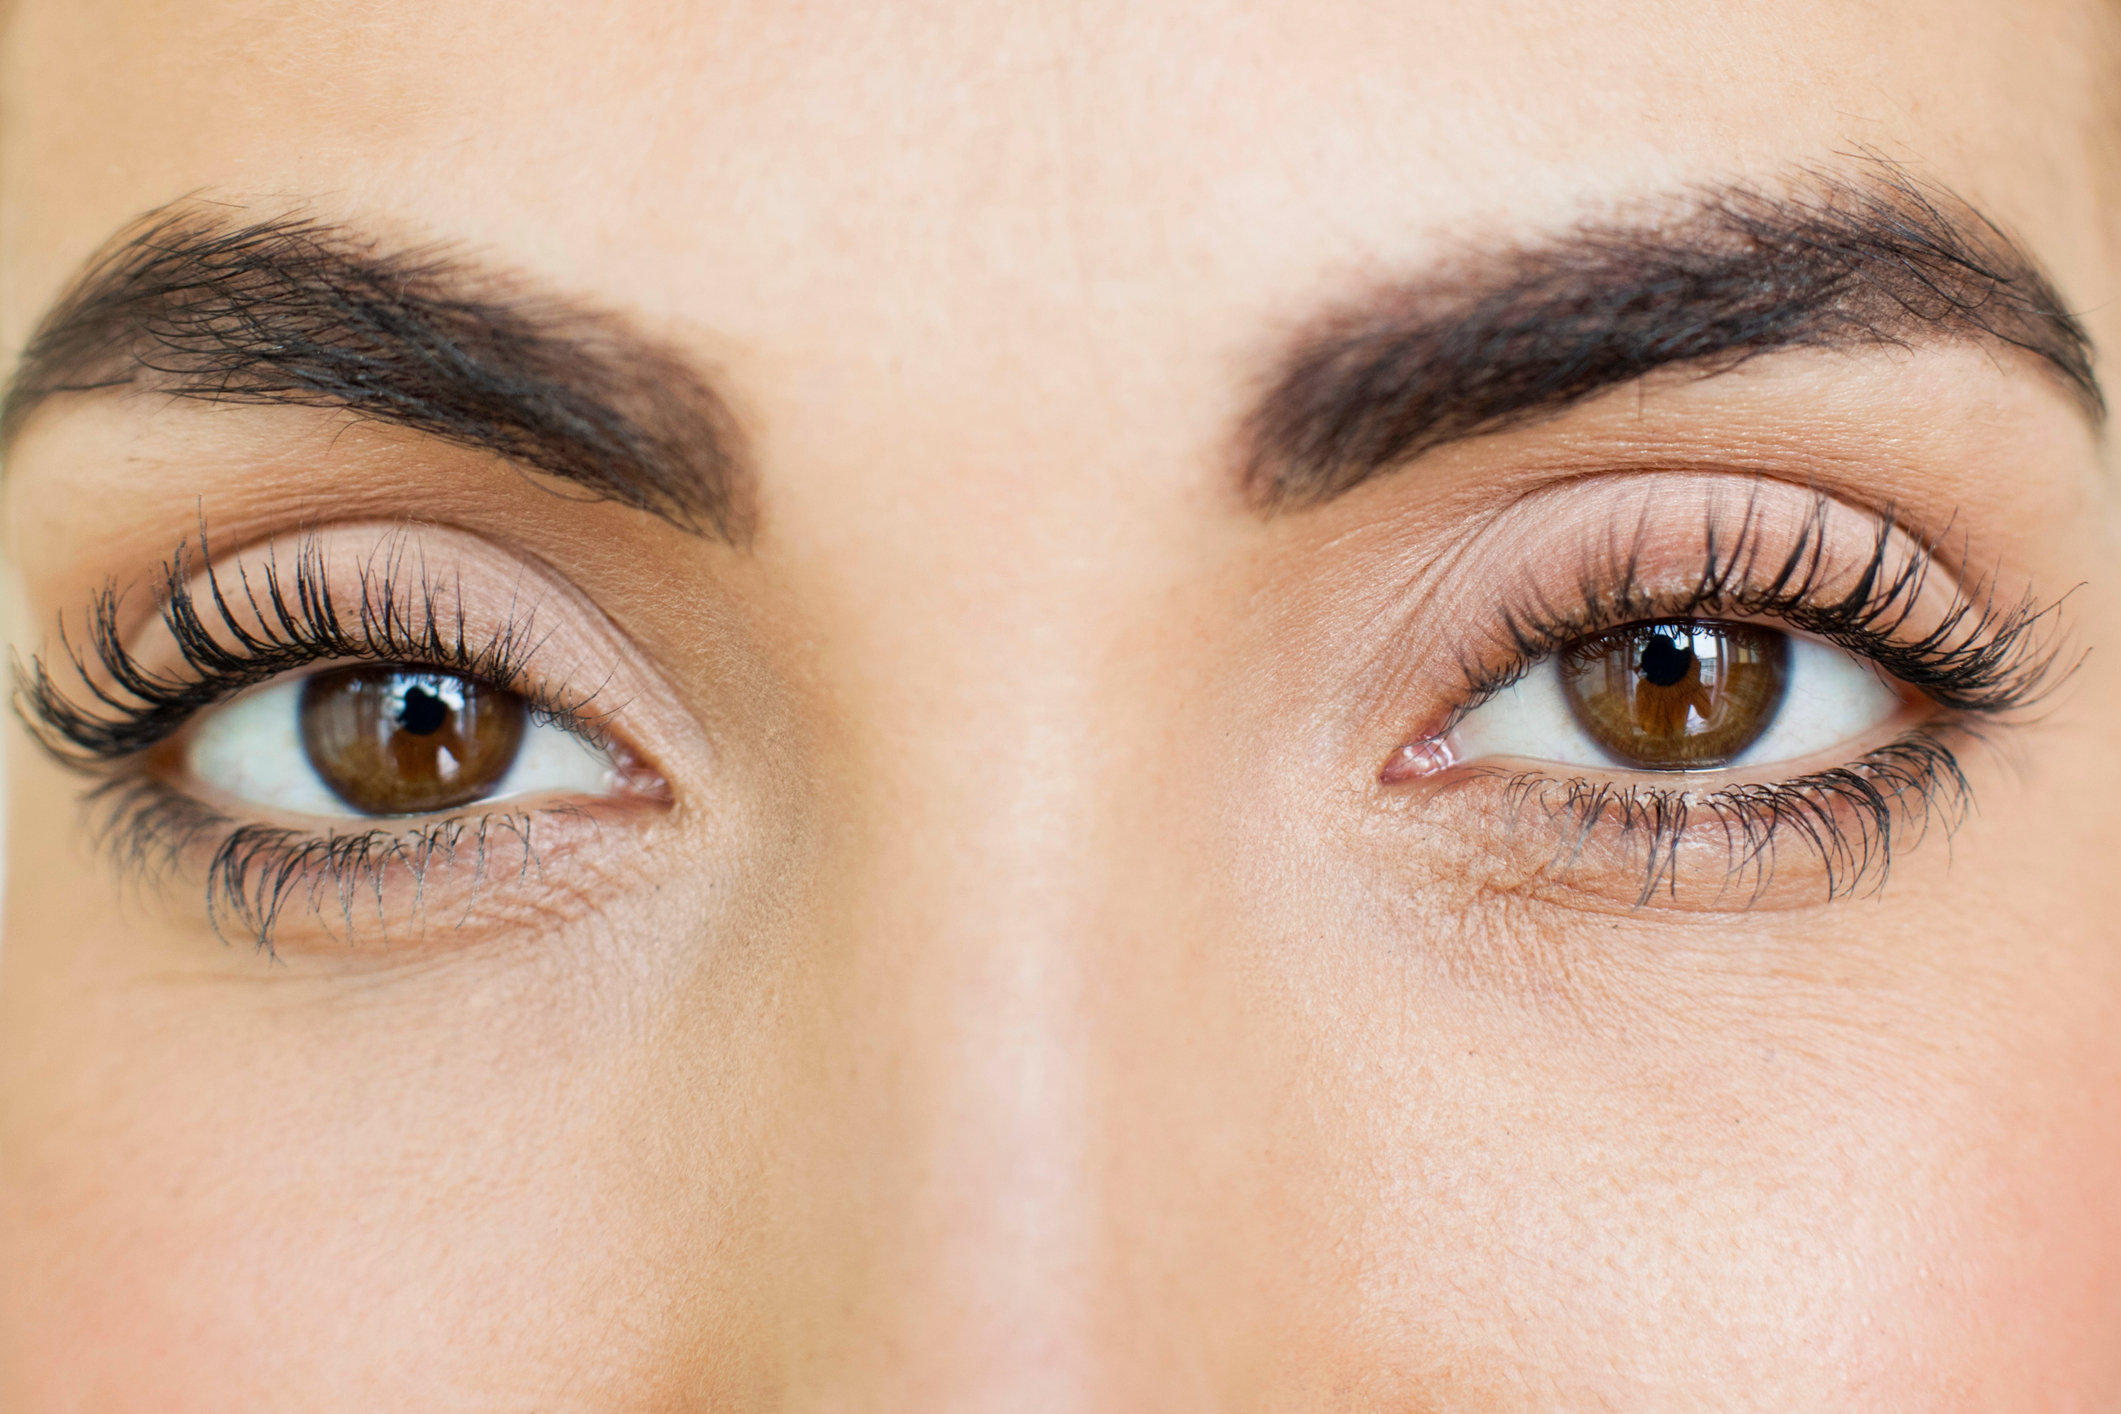 e21047cbd7d 9 Best Eyelash Serums for Longer, Thicker Lashes, According to  Dermatologists